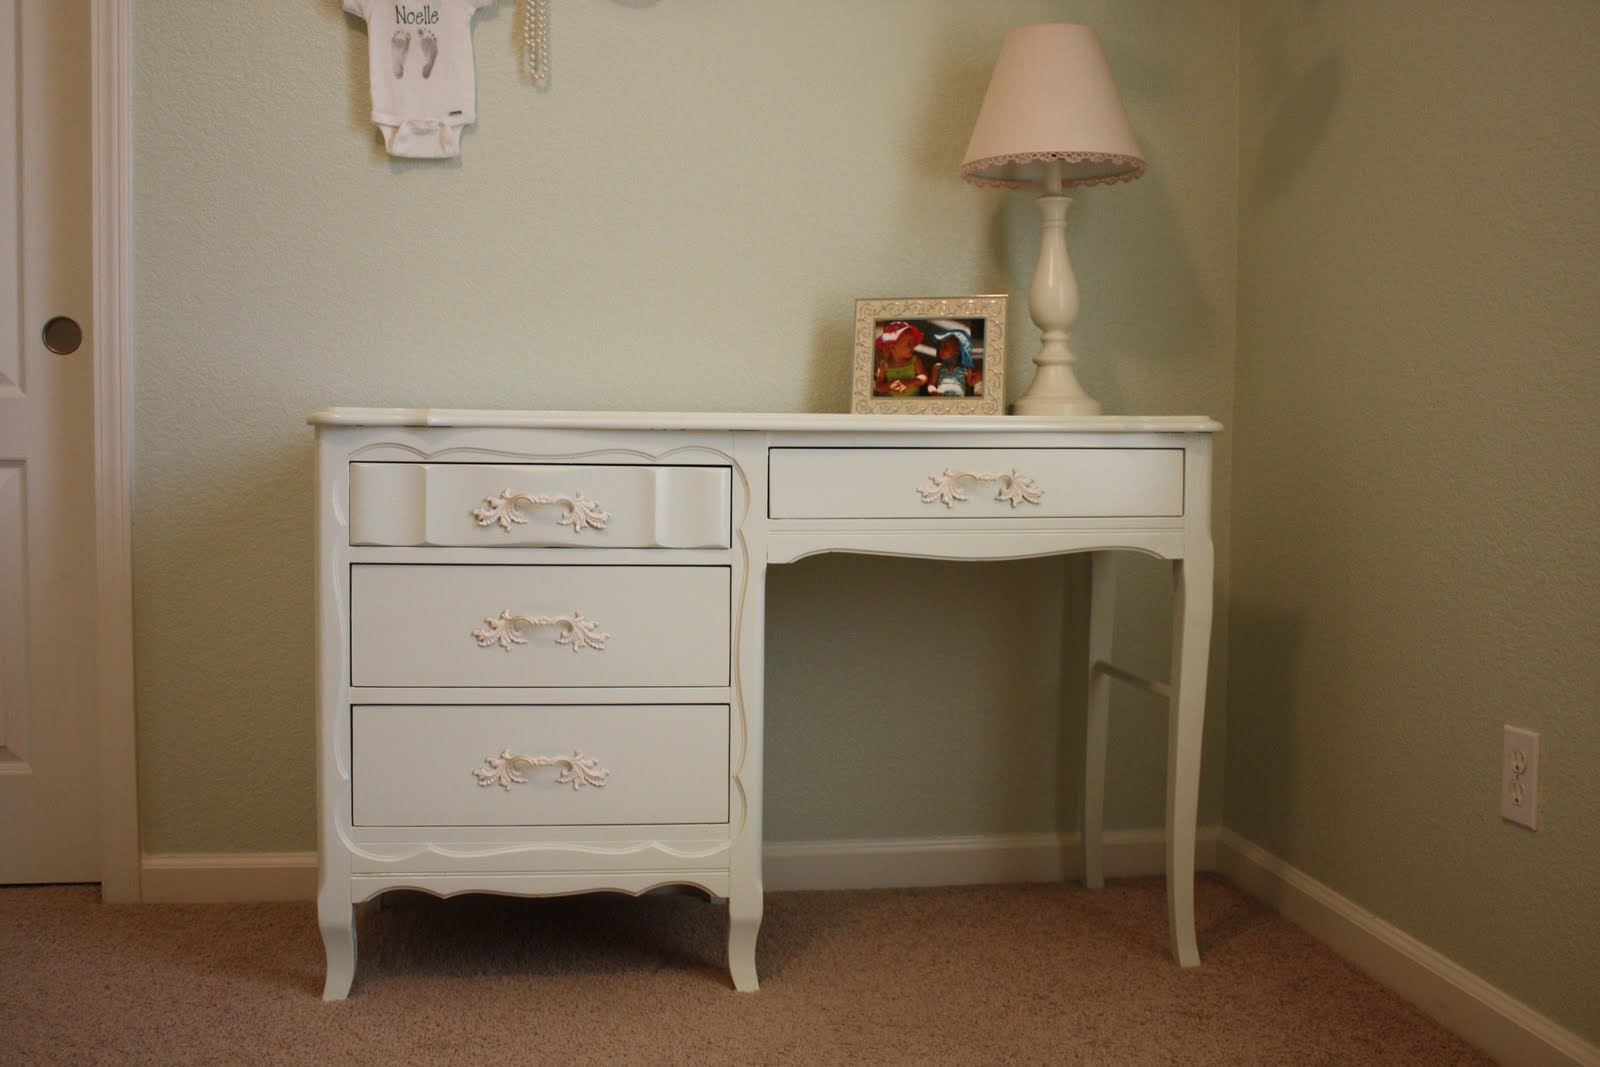 refinished desk images - reverse search